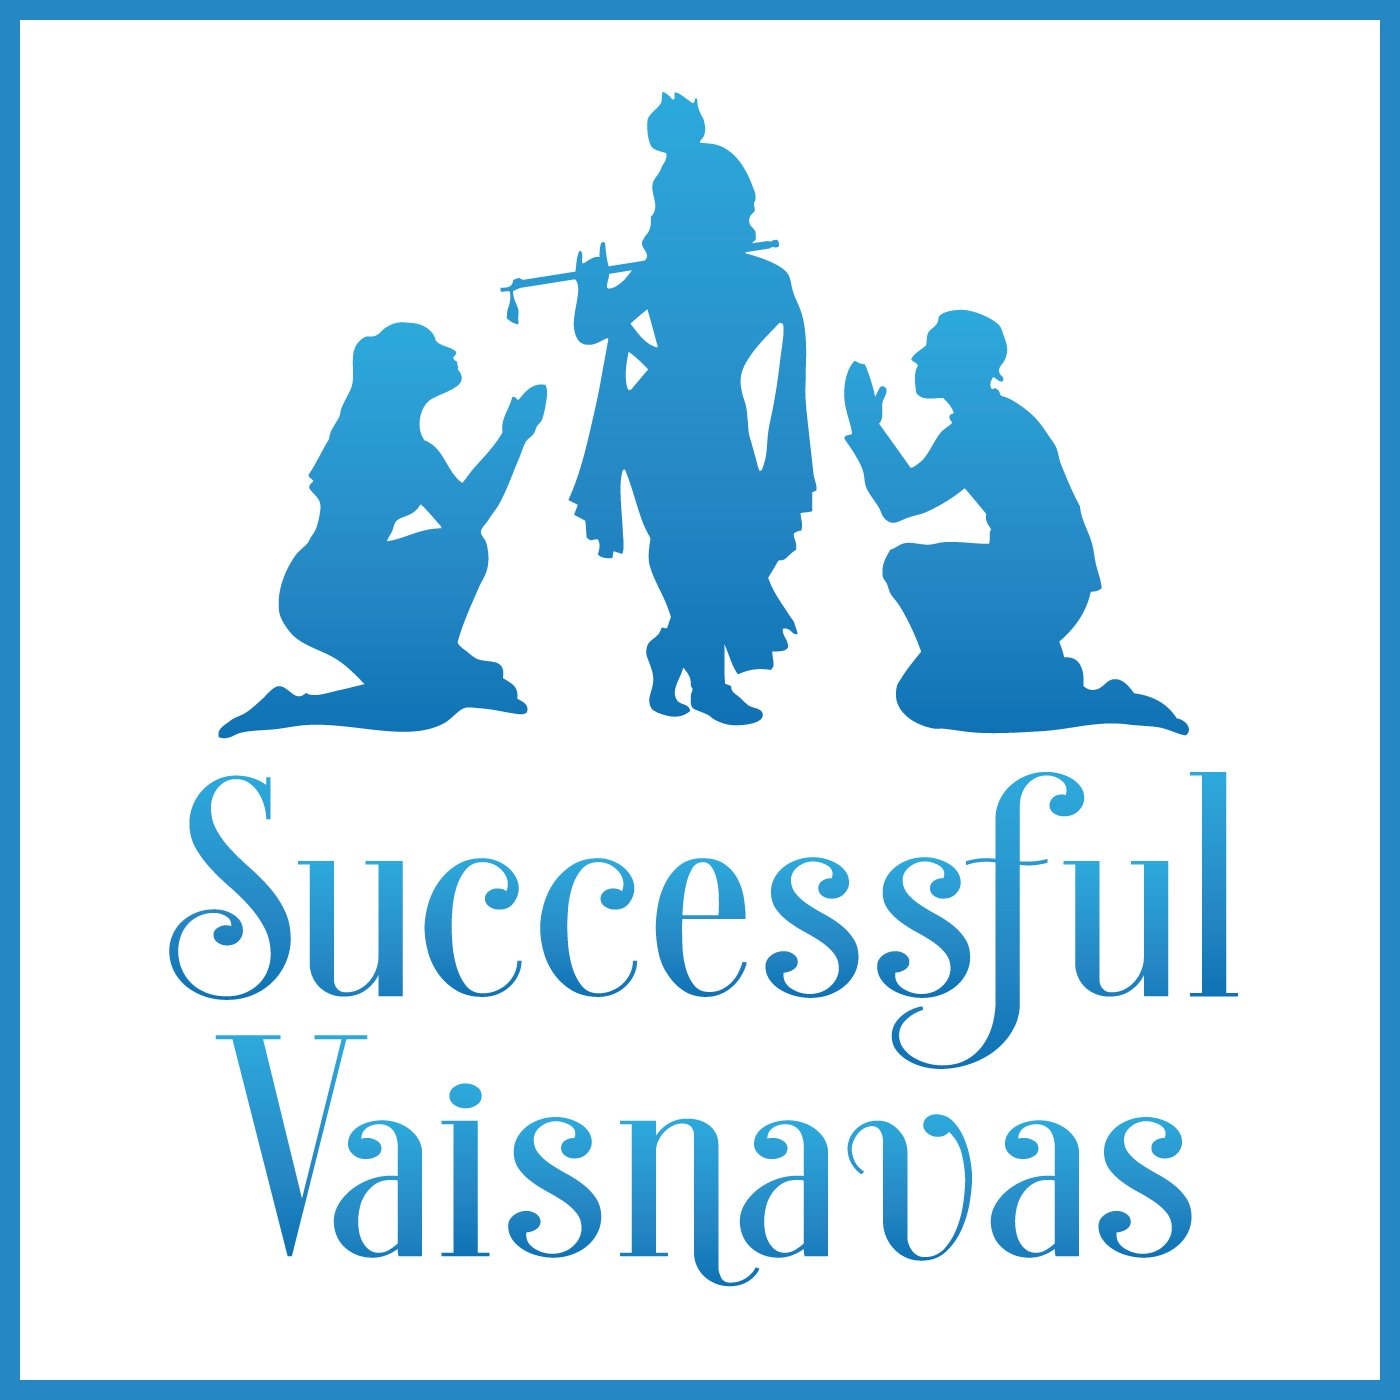 Successful Vaisnavas – Personal Development for Hare Krishnas